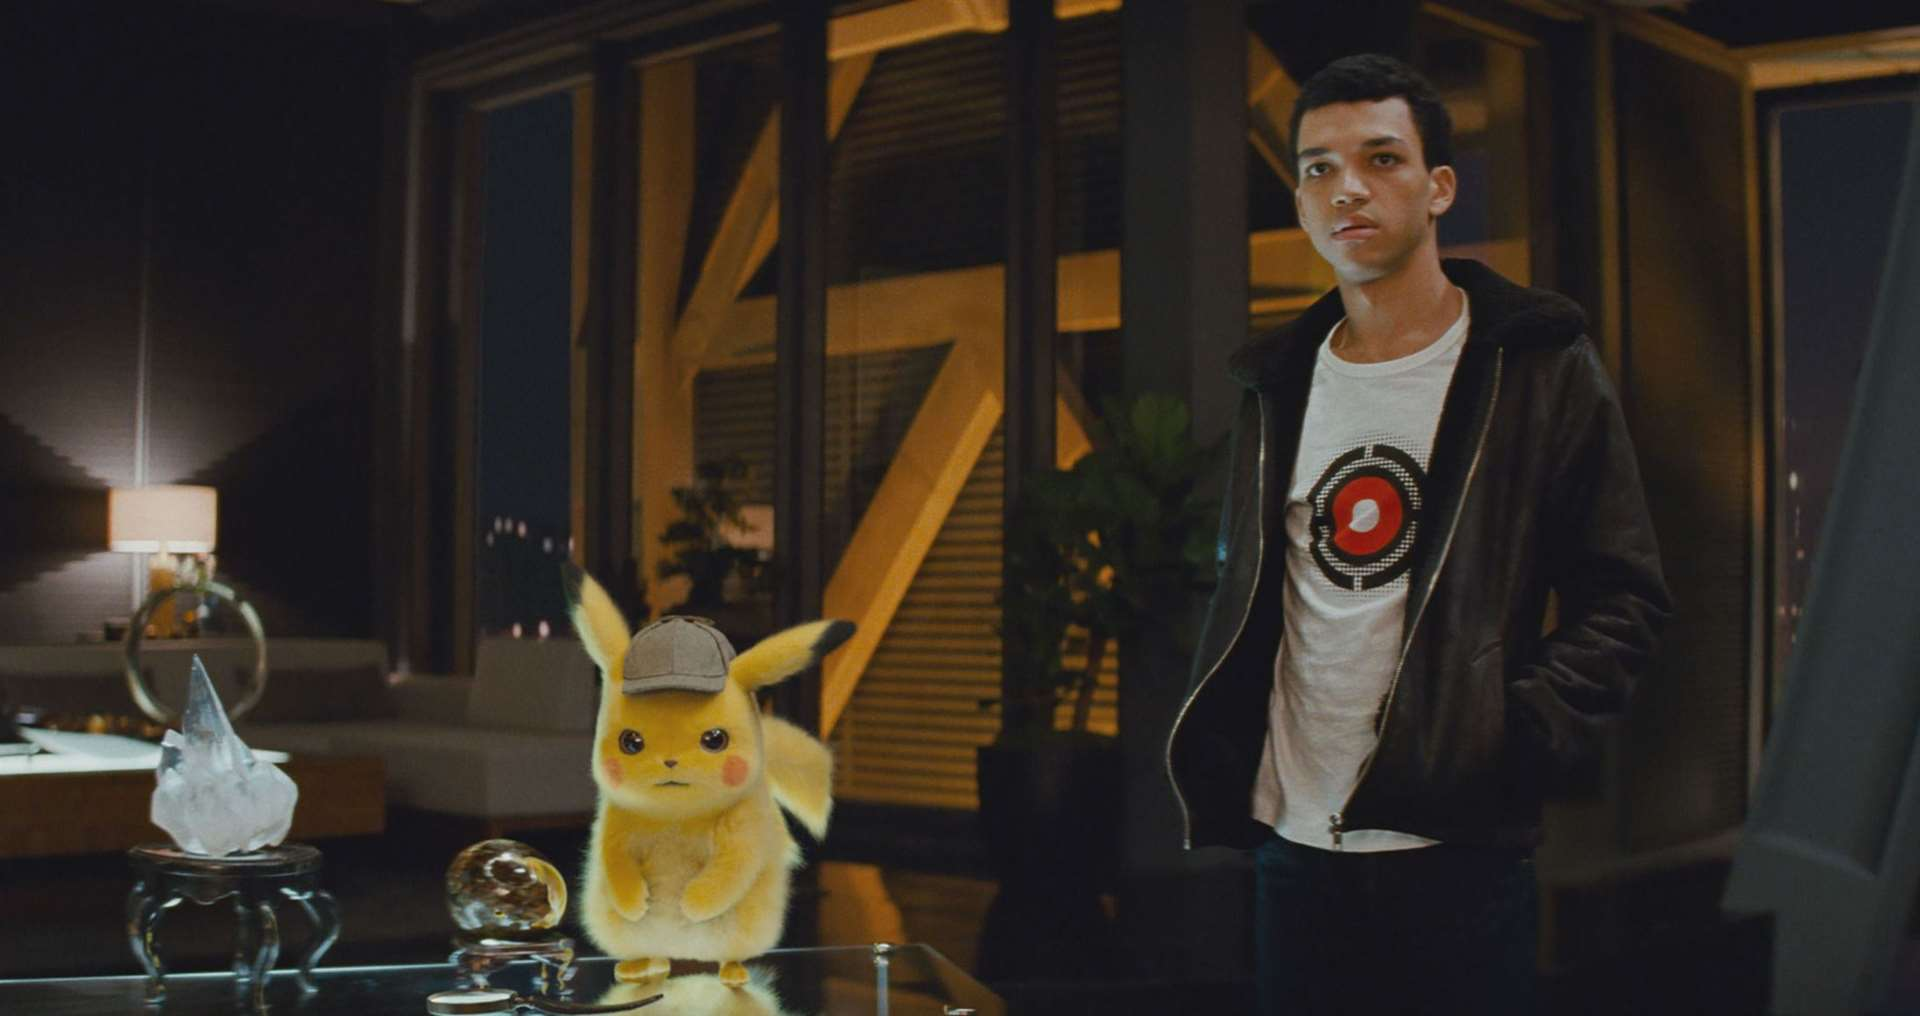 Pikachu (voiced by Ryan Reynolds) and Justice Smith as Tim Goodman. SPicture credit: PA Photo/Legendary/Warner Bros. Entertainment Inc.